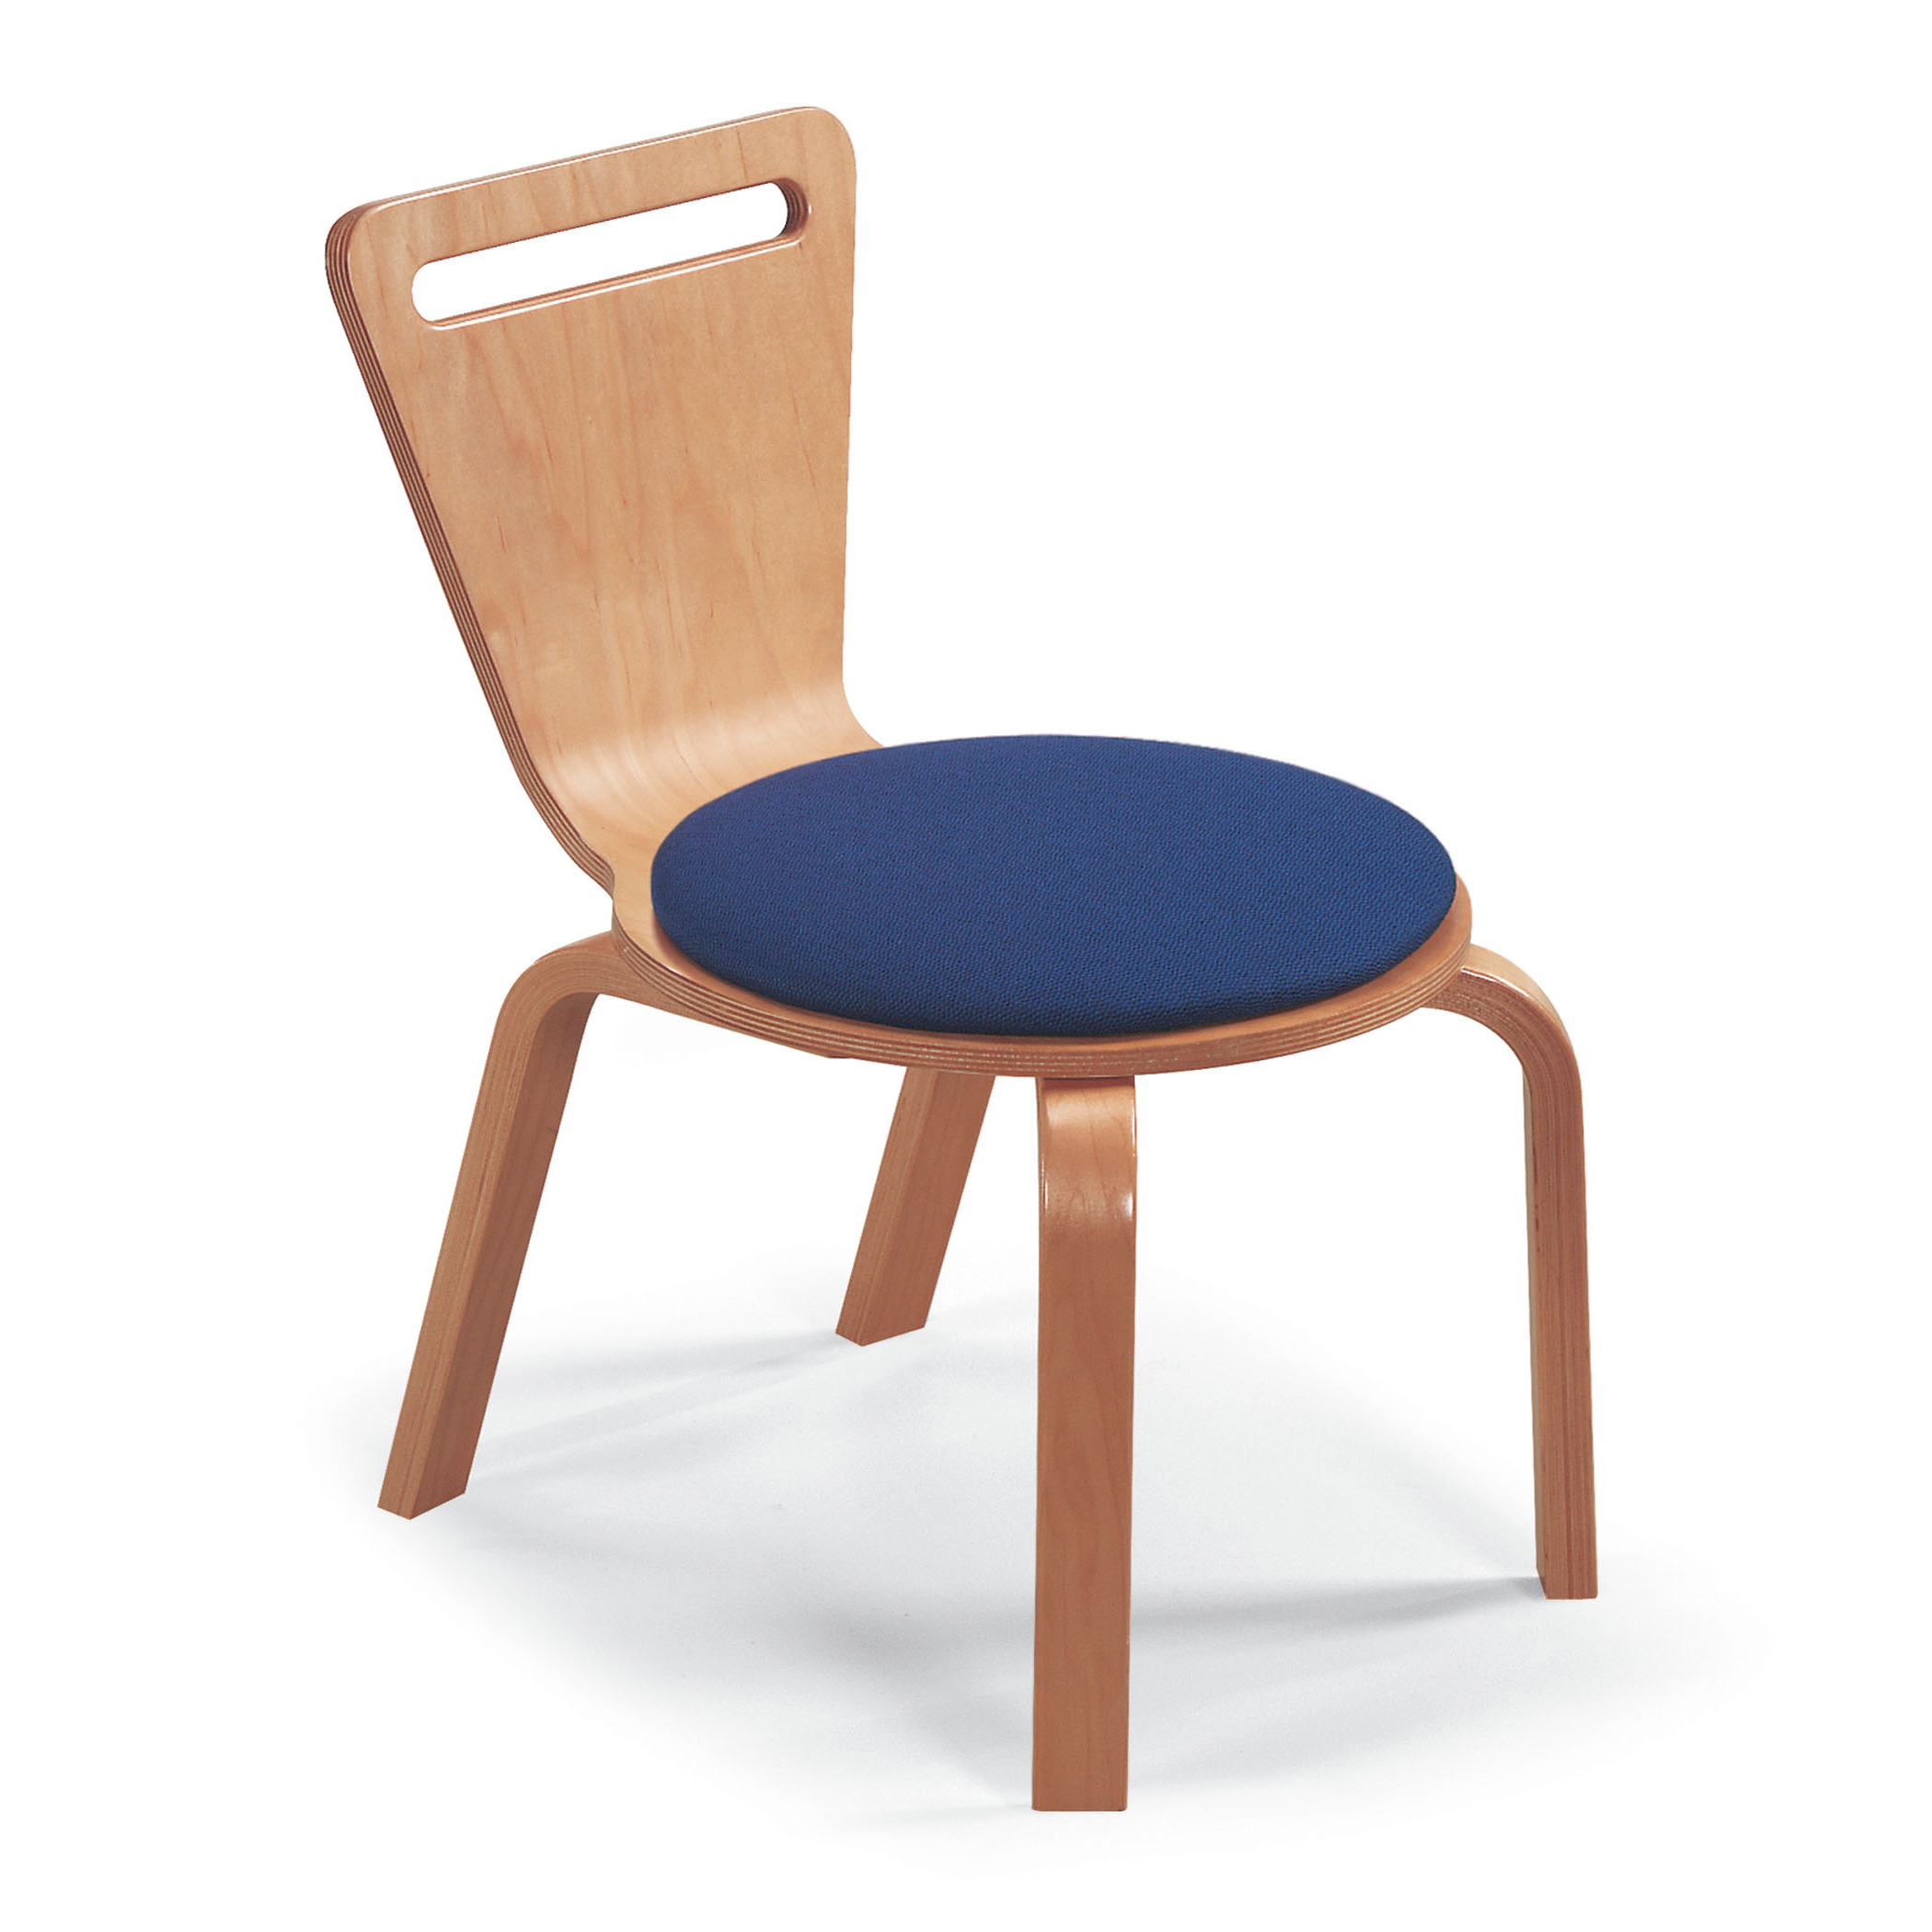 Thonet modular furniture and mercial tables and chairs for children